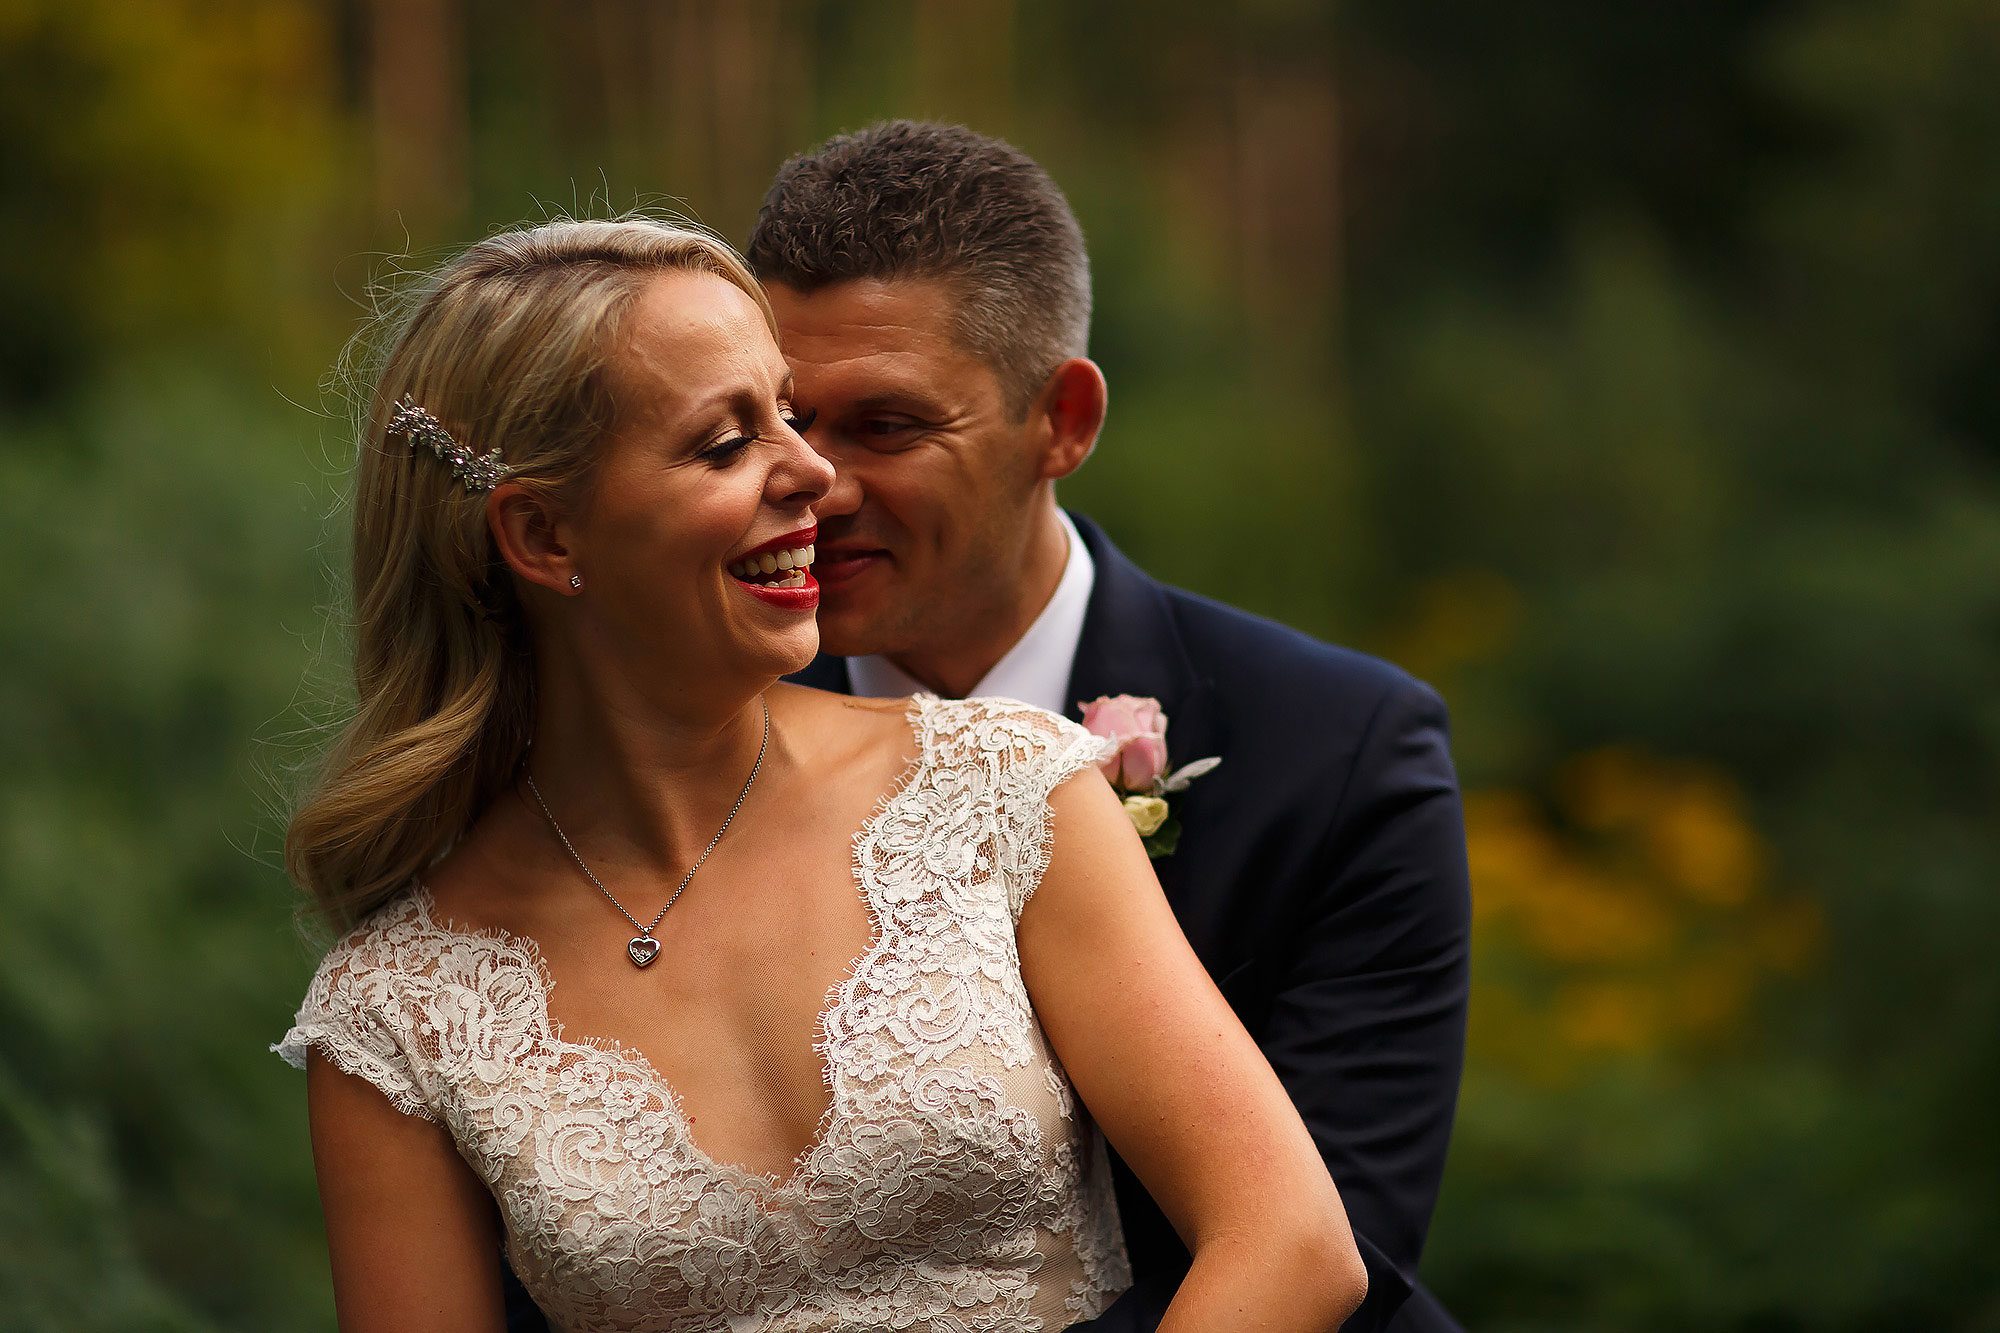 Bride wearing lace wedding dress and side hair clip facing groom wearing blue suit in the forest at Peckforton Castle | Peckforton Castle Wedding by Toni Darcy Photography